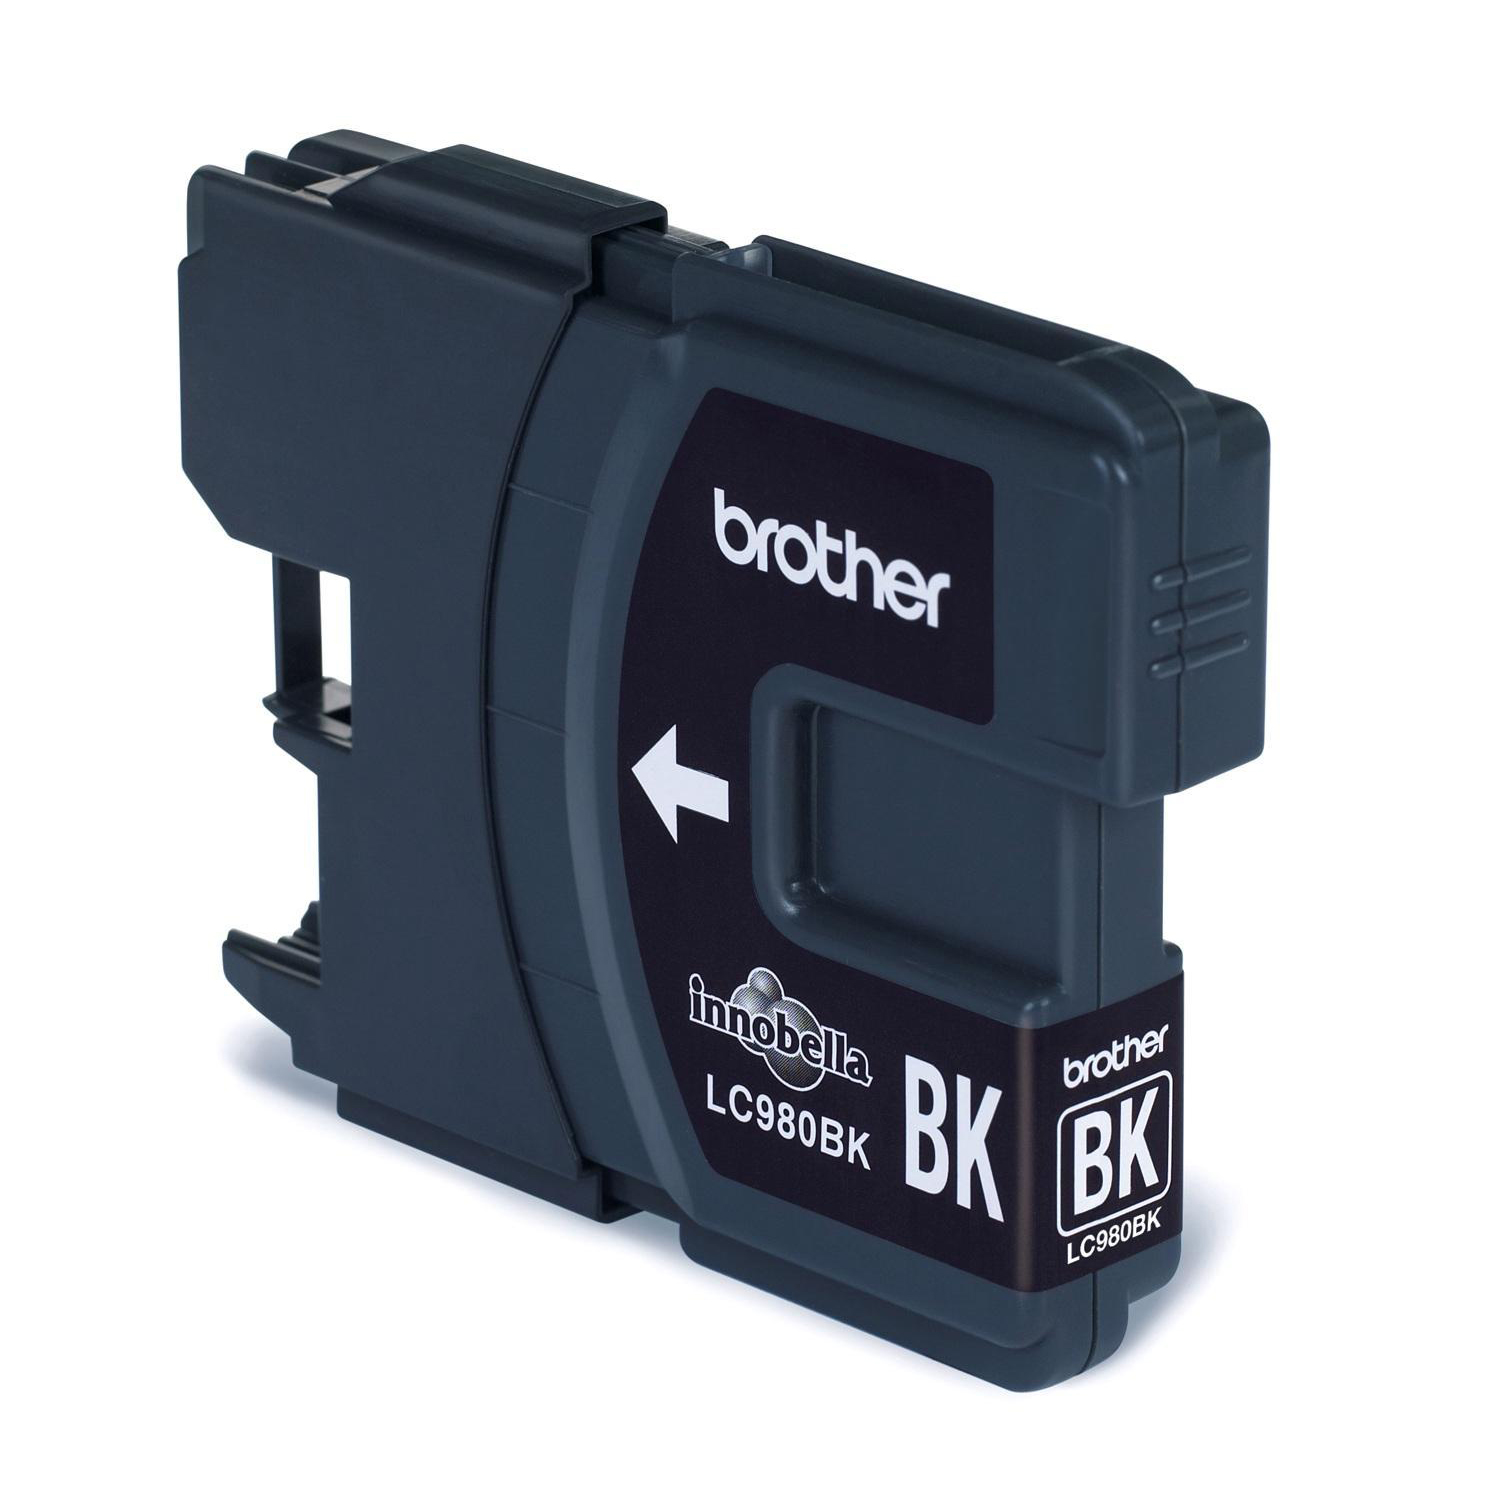 Brother Inkjet Cartridge Page Life 300pp Black Ref LC980BK